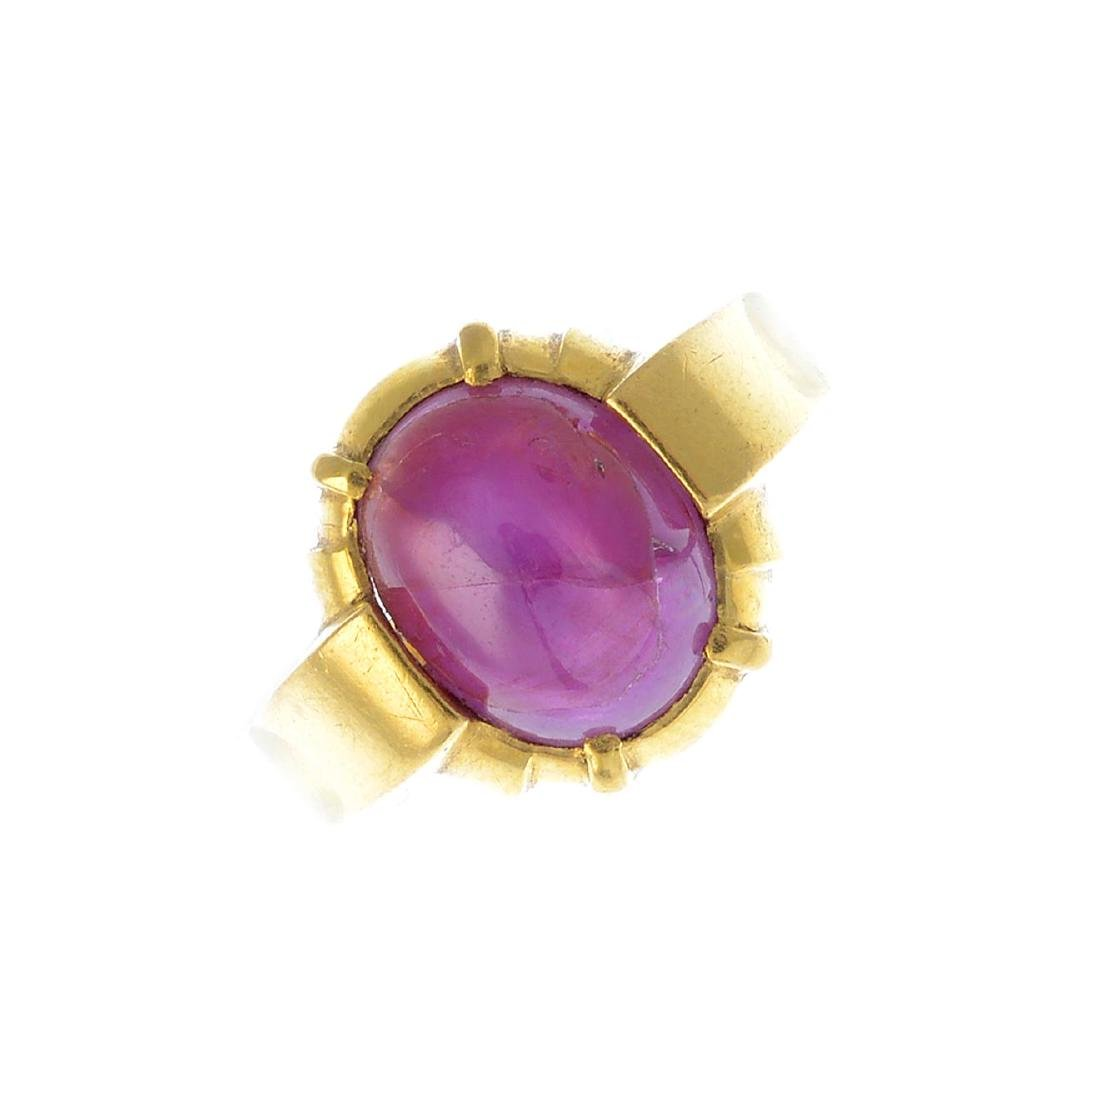 (205872) A ruby single-stone ring. The star ruby